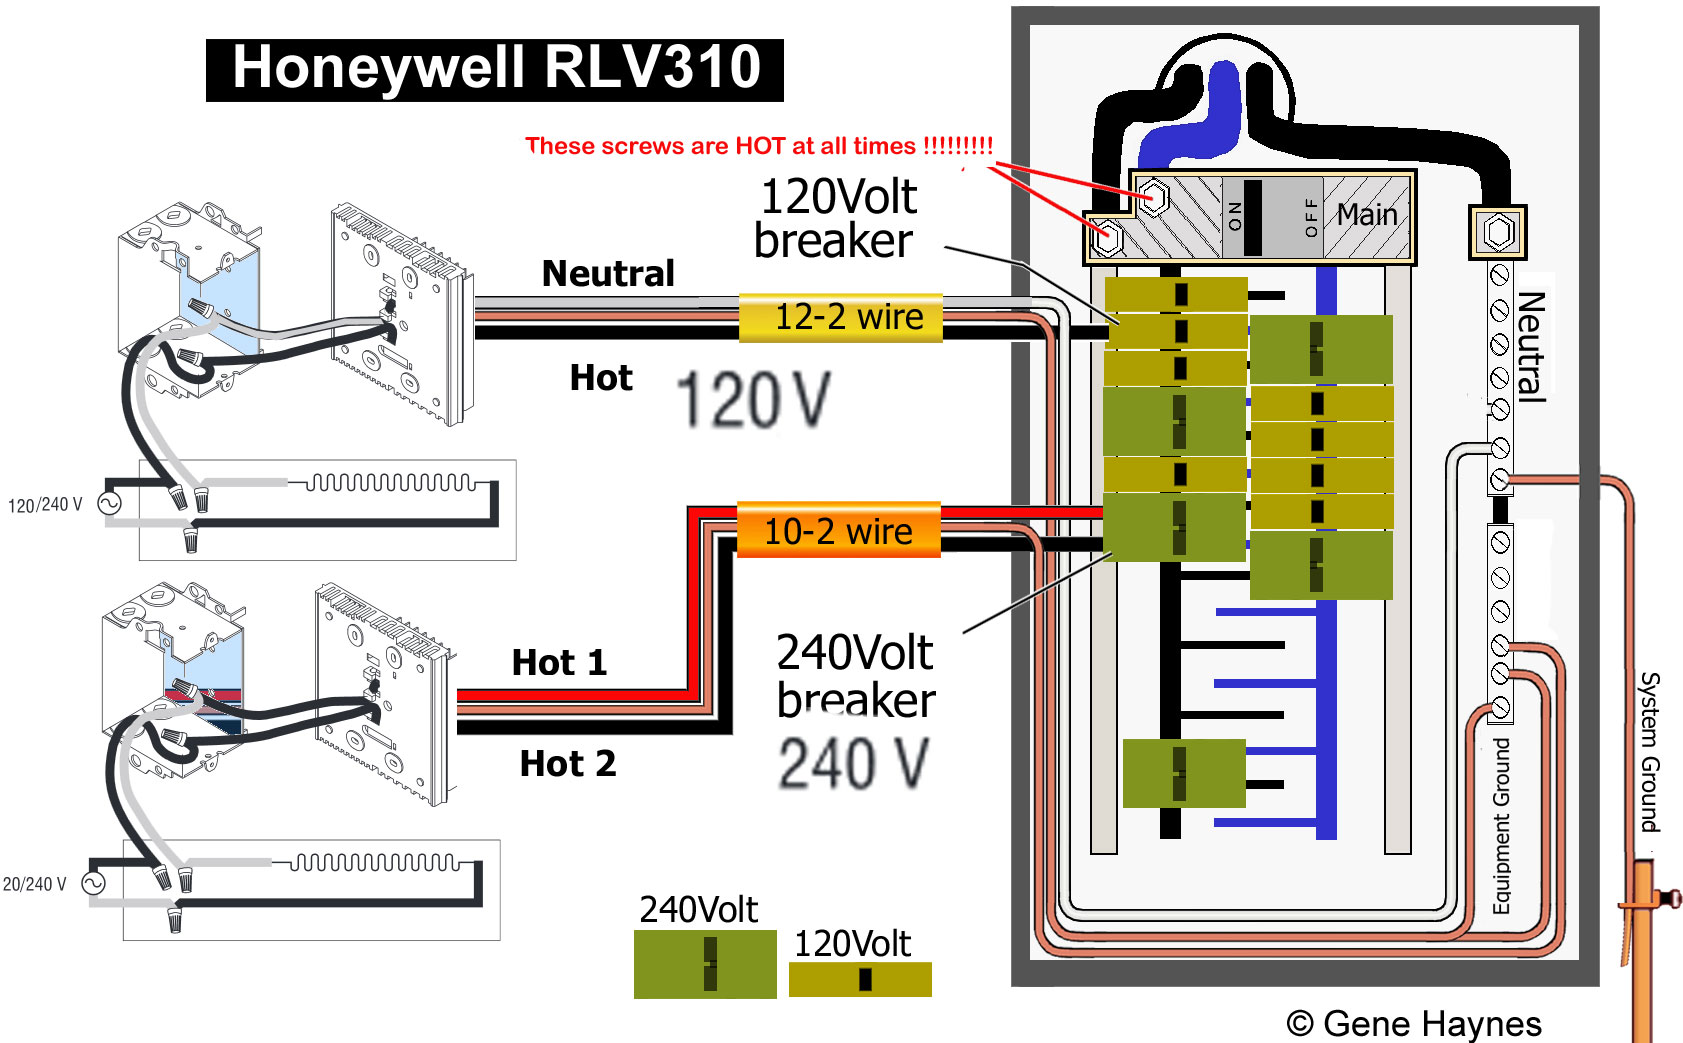 Baseboard Heaters Tpi Wiring Diagram Modern Design Of Heater Instructions Heat 240v Thermostat